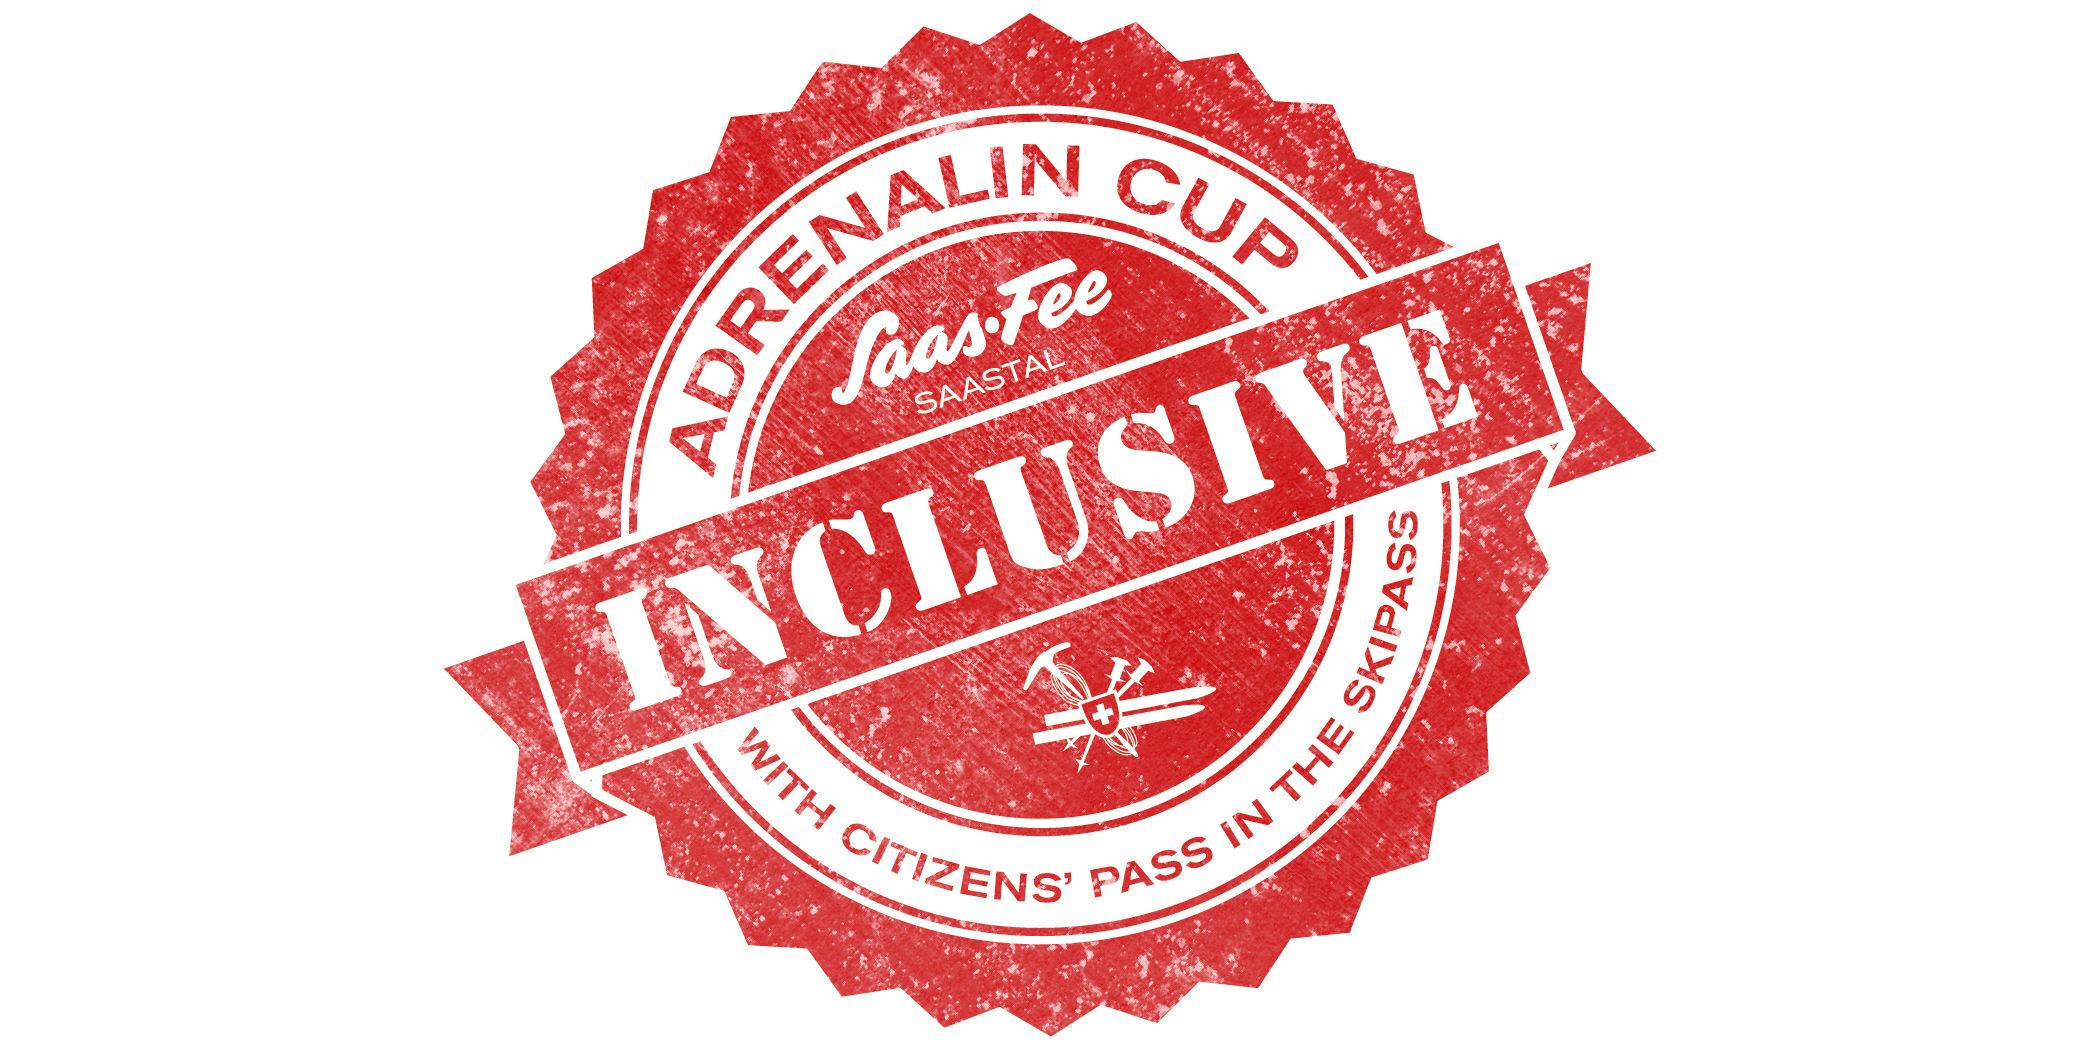 Adrenalin Cup with Citizens' Pass inclusive